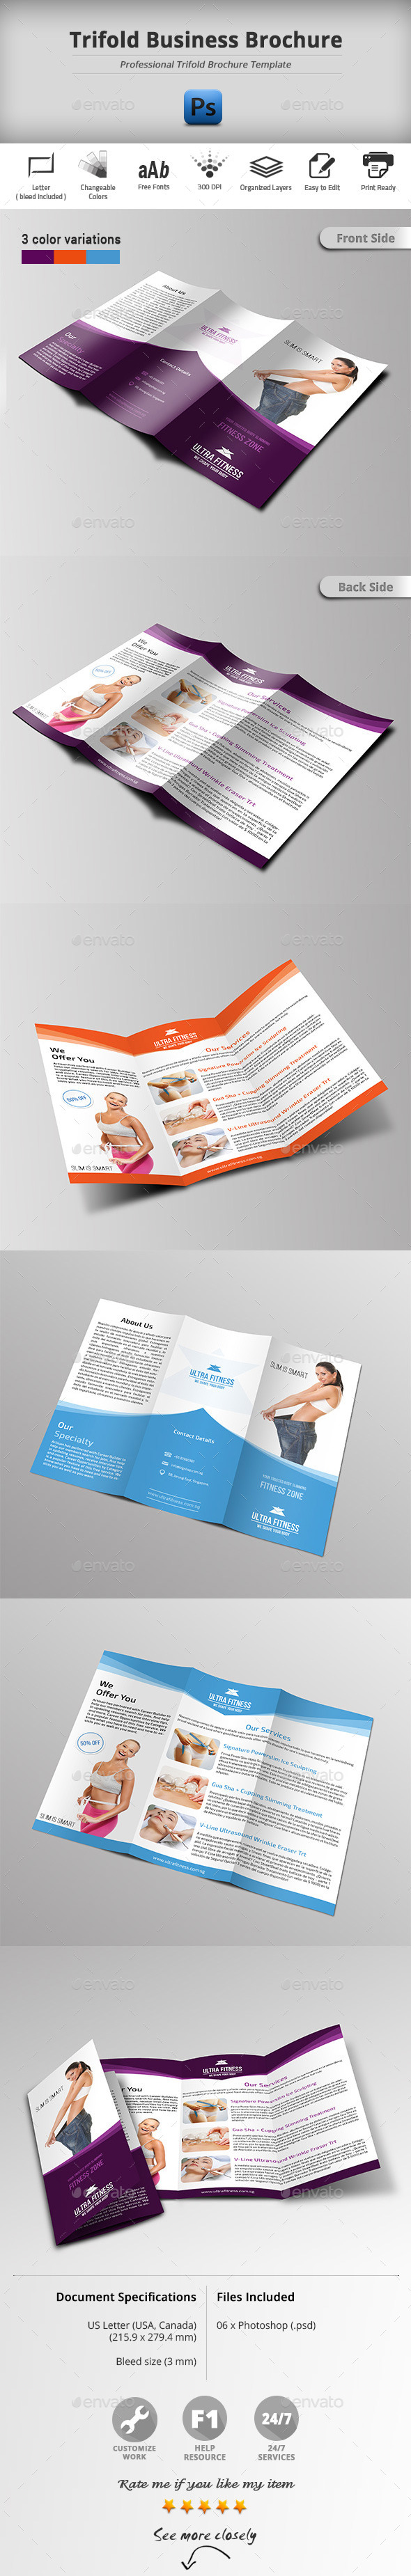 GraphicRiver Trifold Business Brochure 11361030